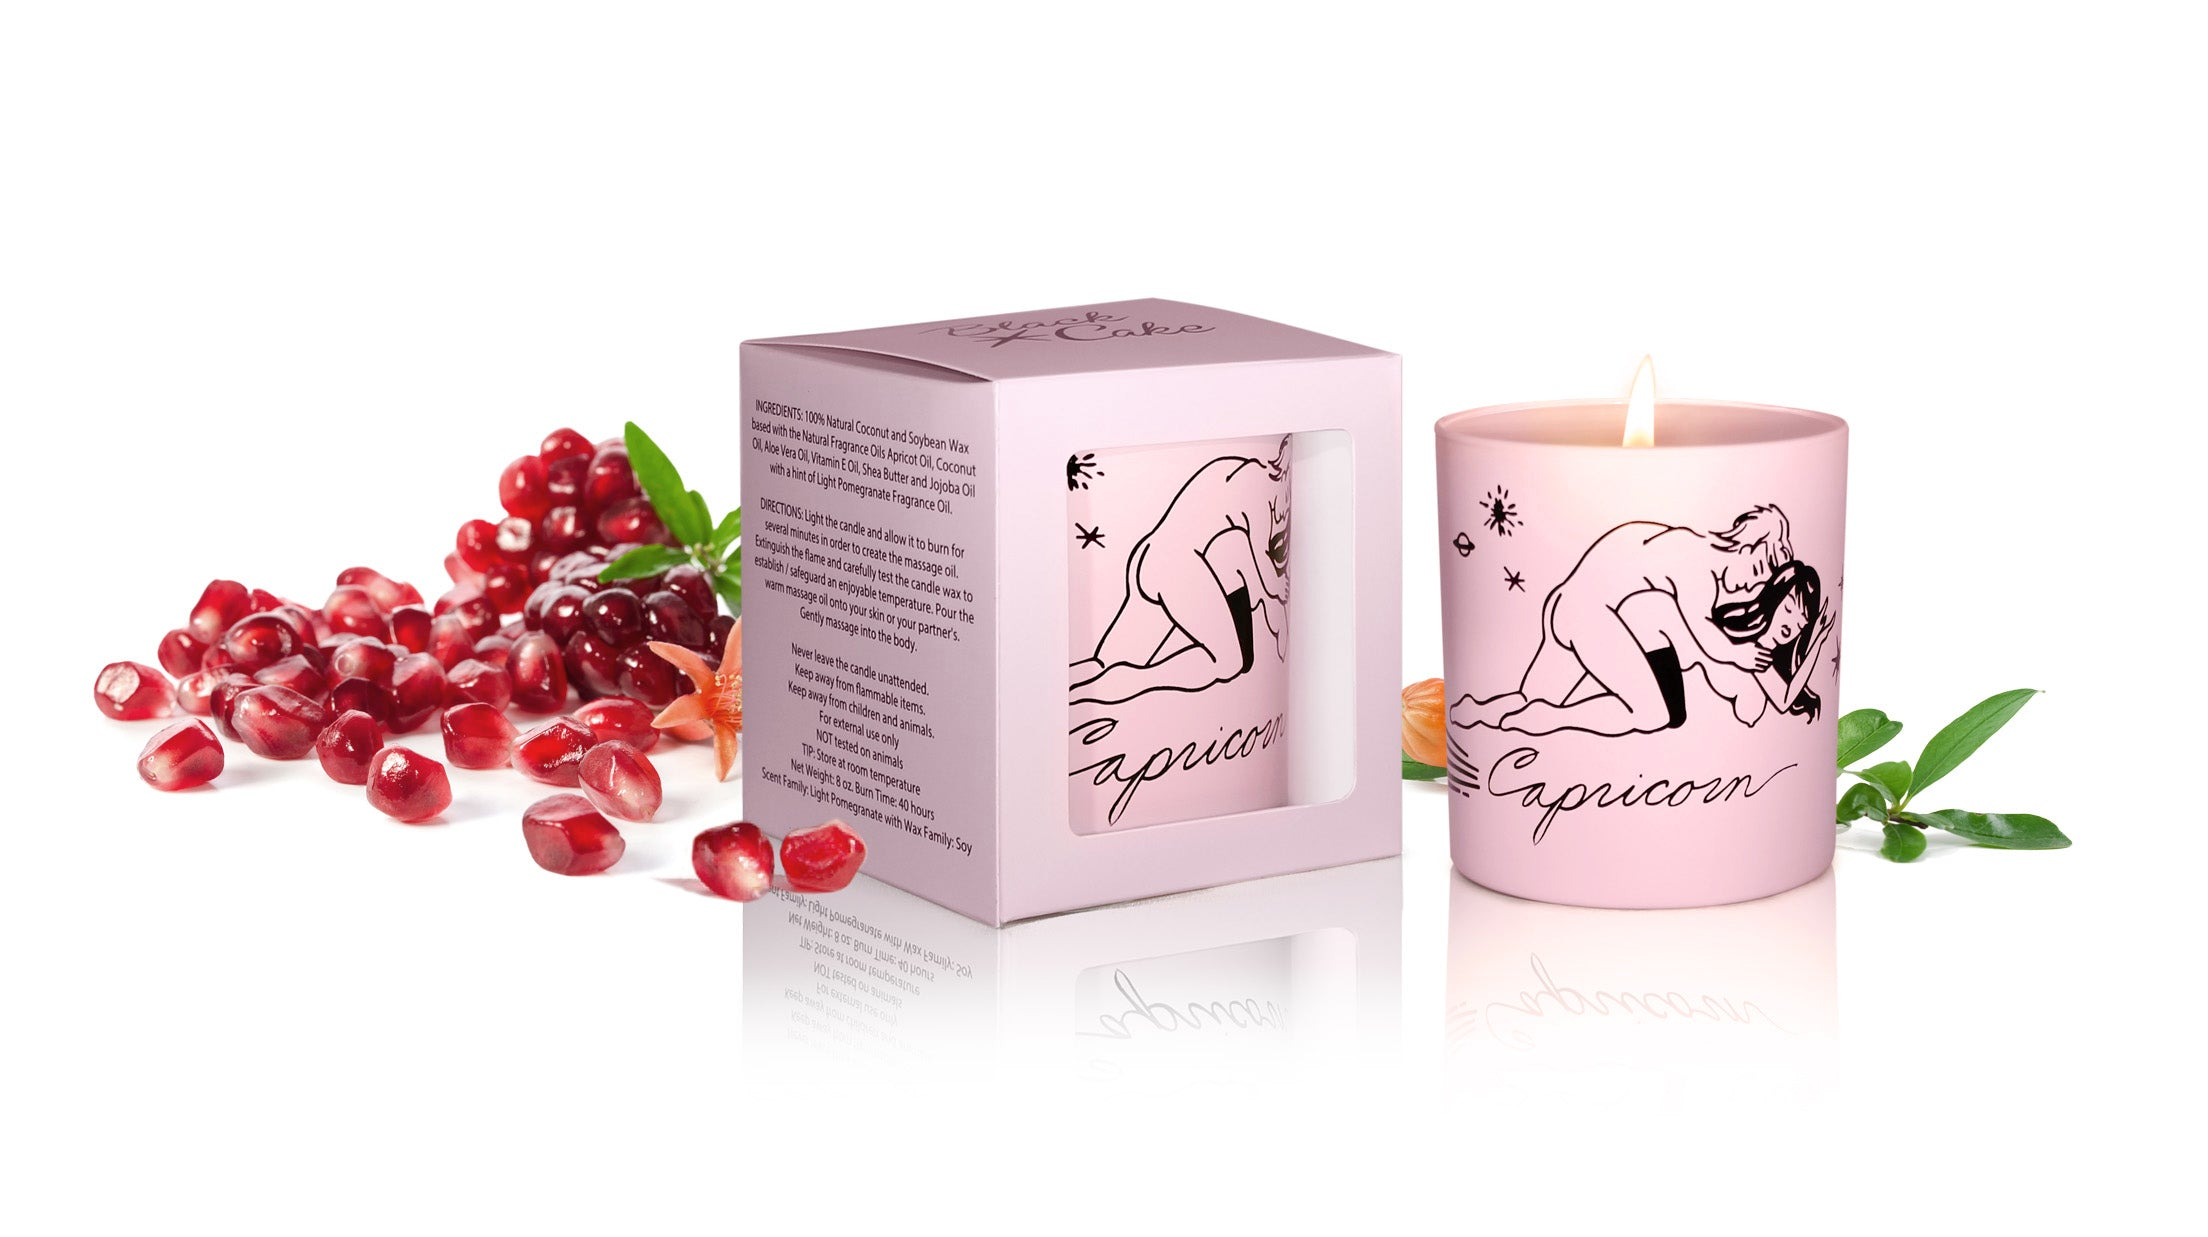 Zodiac Massage Candle Capricorn, Pomegranate Fragrance